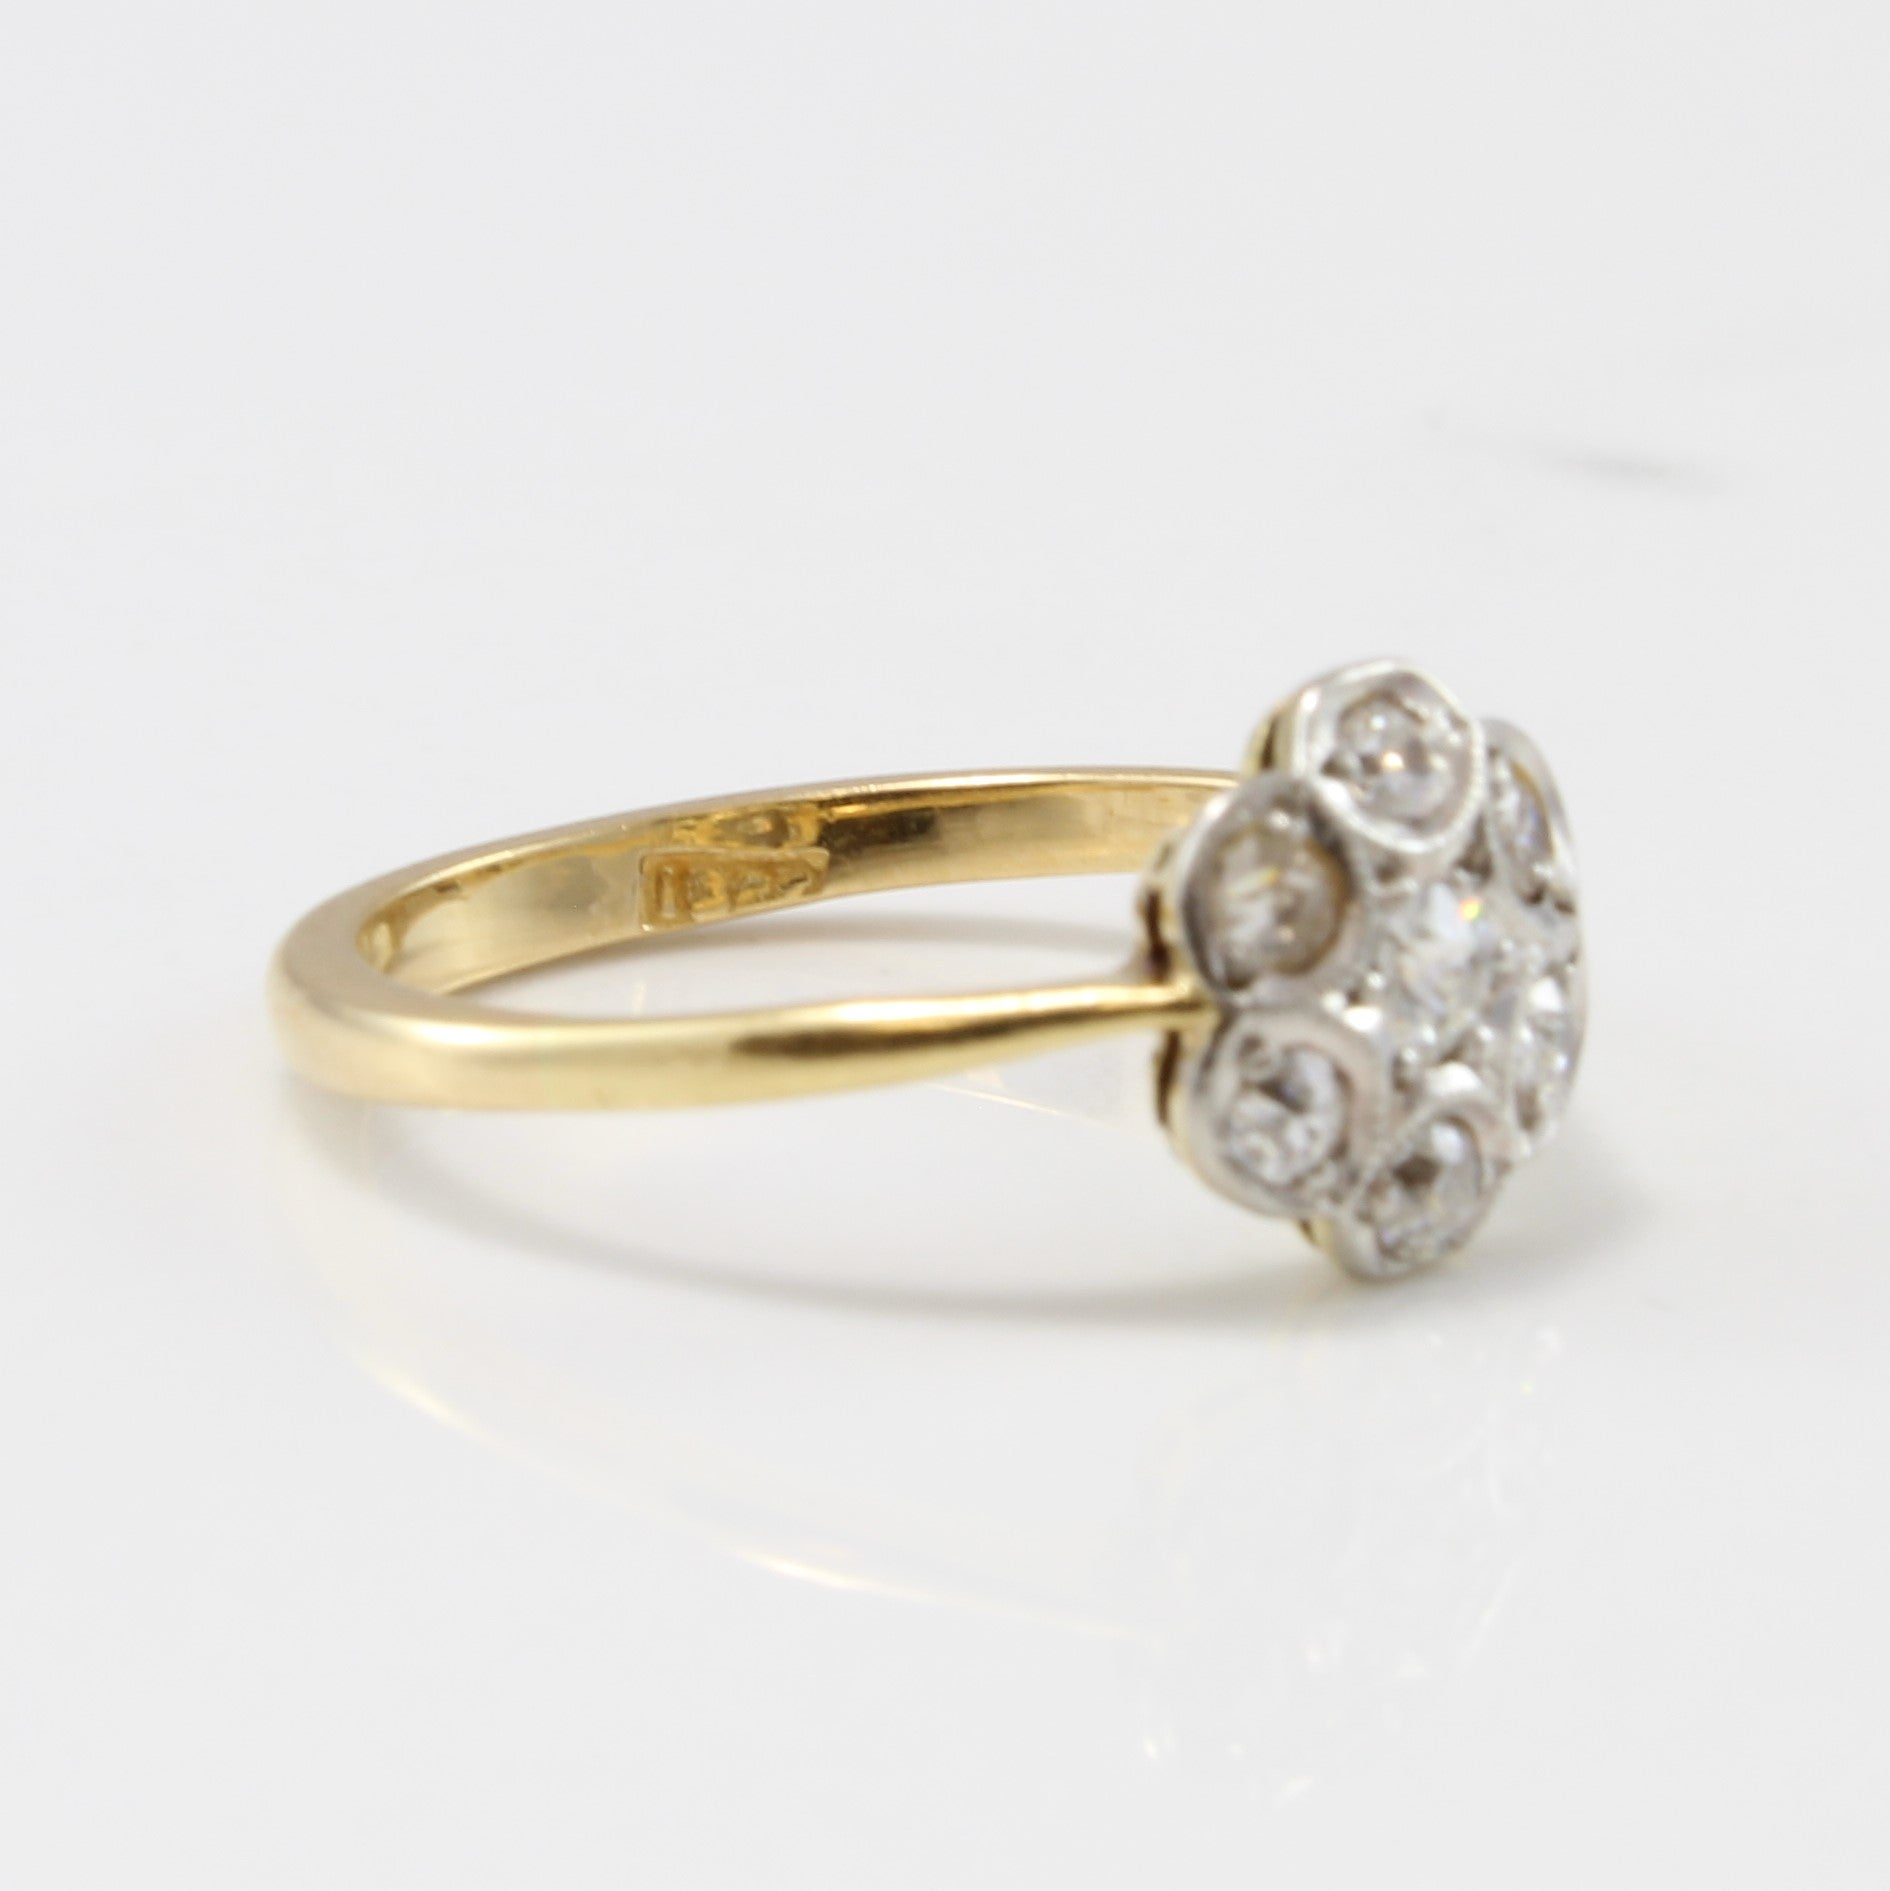 Edwardian Floral Diamond Ring | 0.32 ctw | SZ 5.75 |